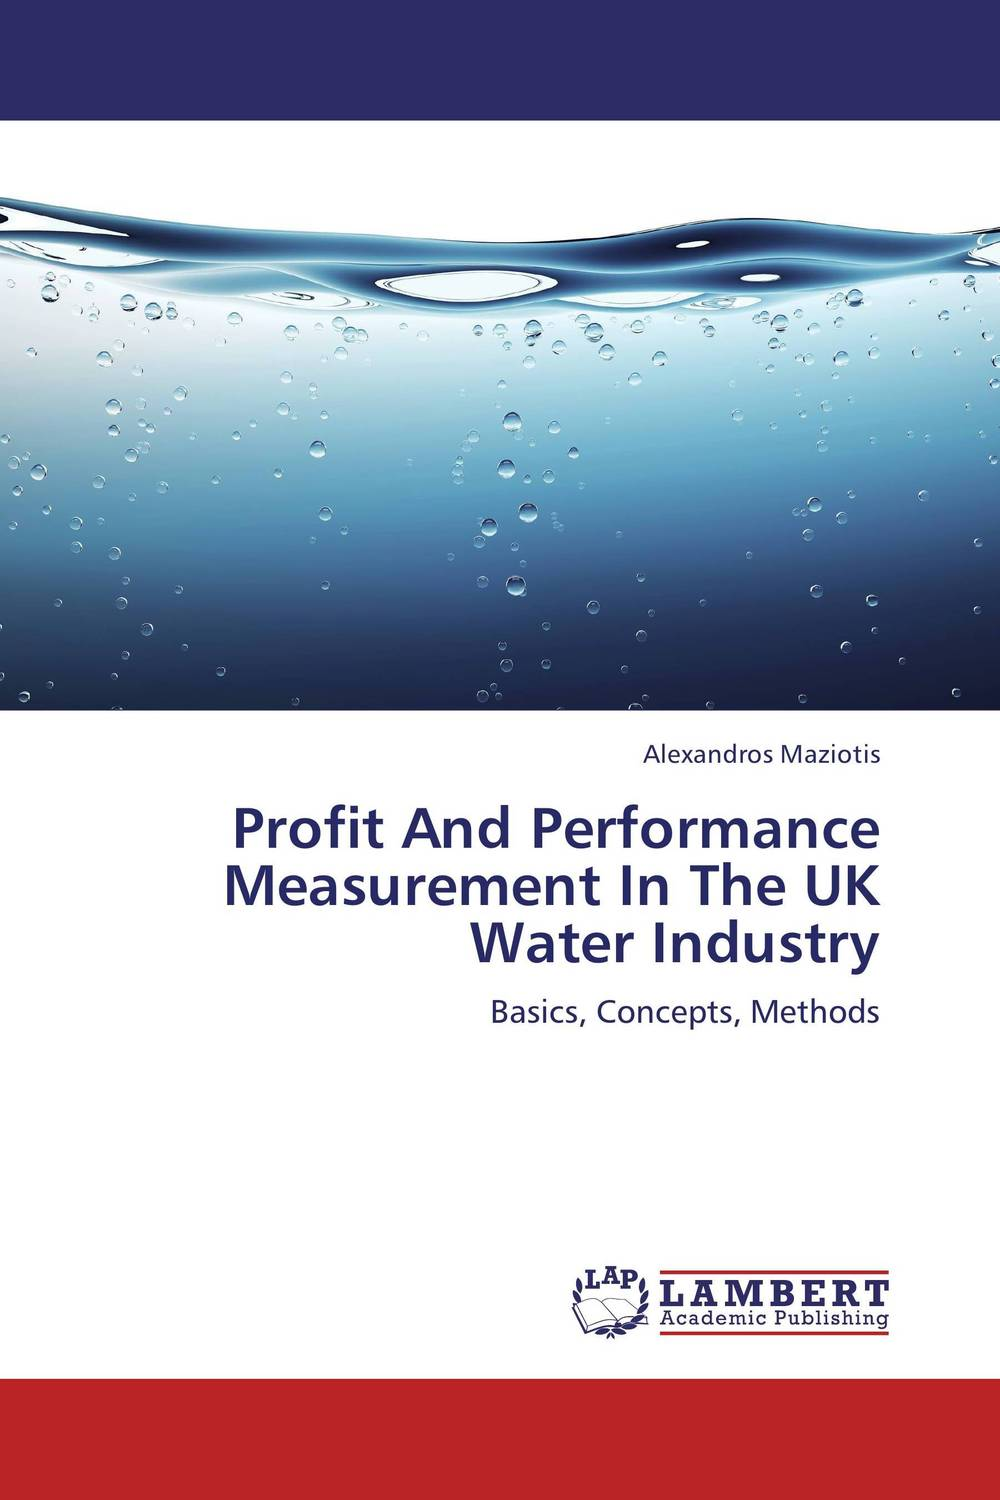 Profit And Performance Measurement In The UK Water Industry financial performance of lanco industries limited in chittoor district